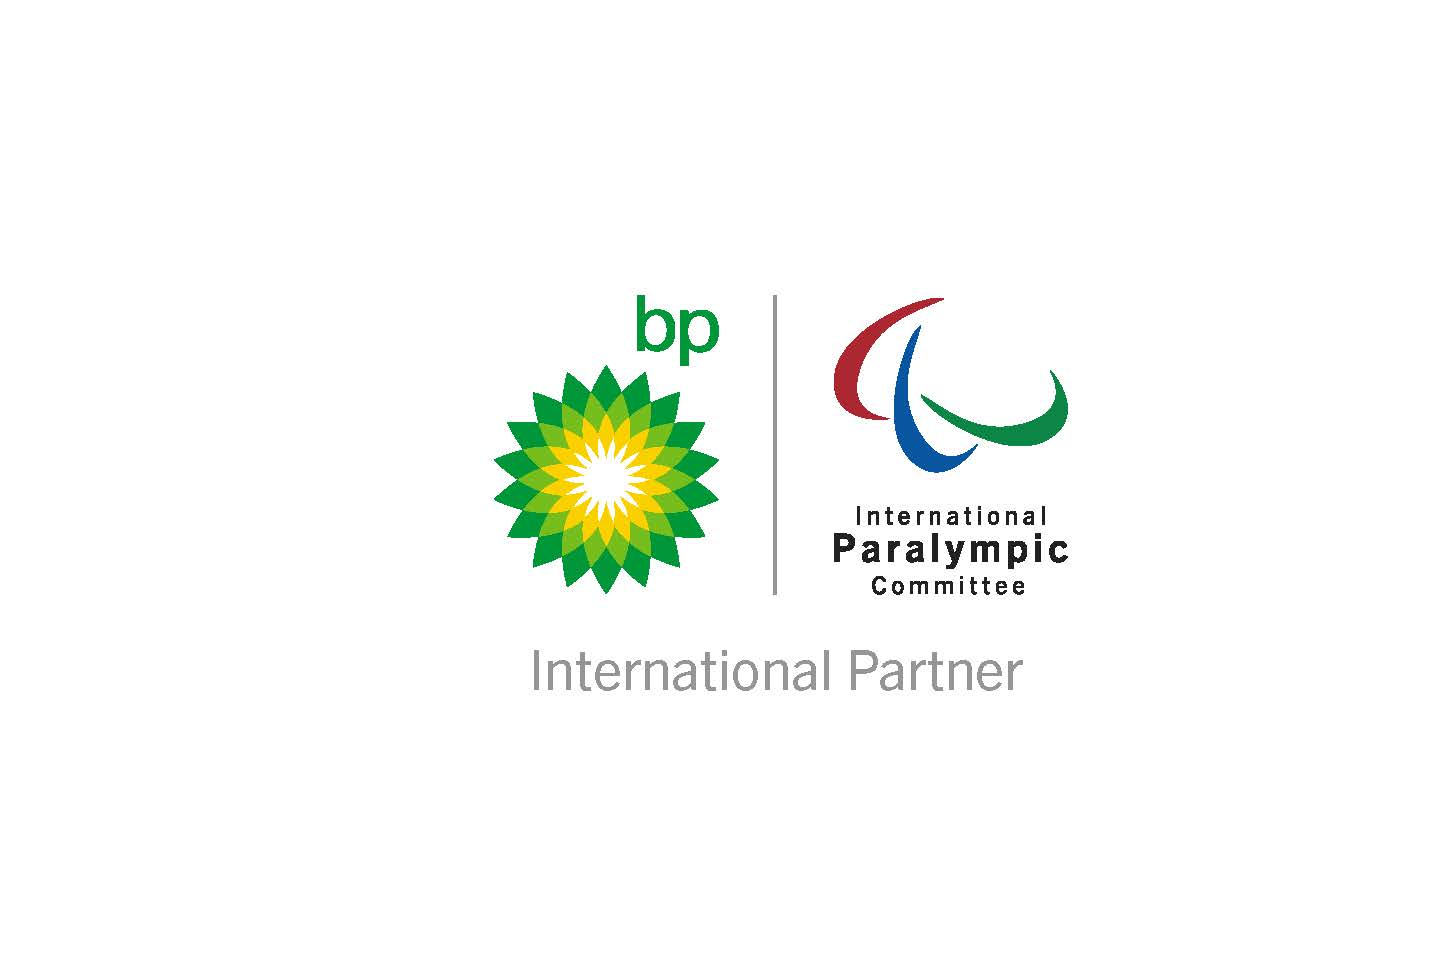 BP courage award launched